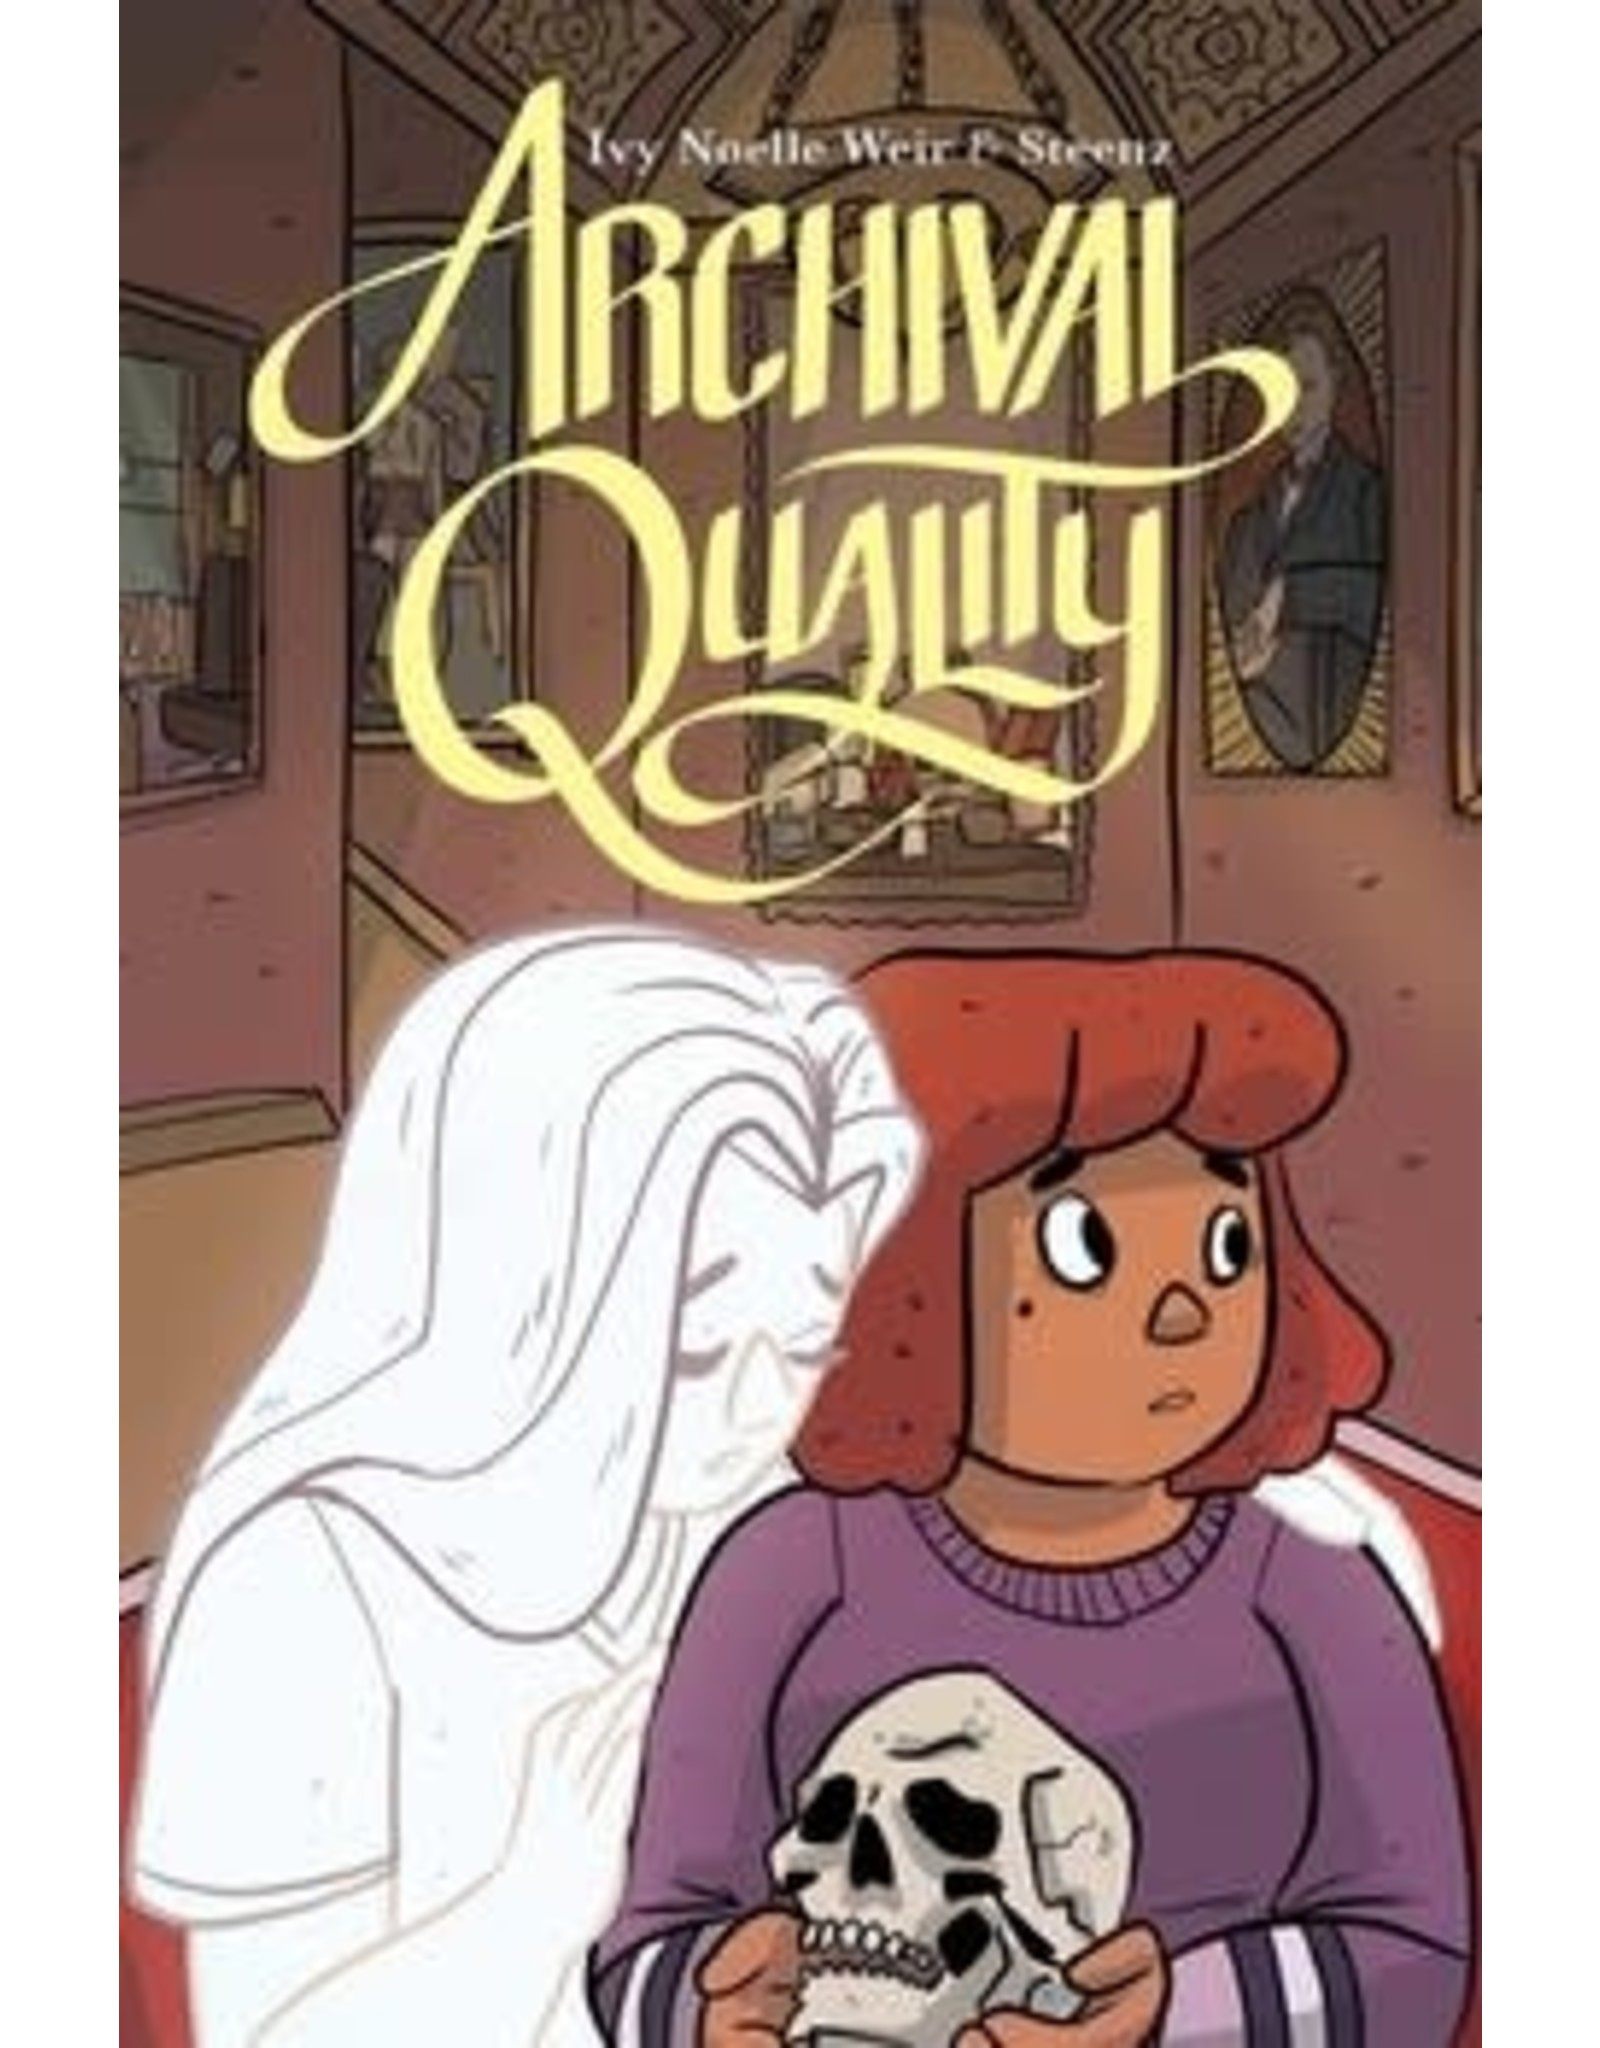 ONI PRESS INC. ARCHIVAL QUALITY GN